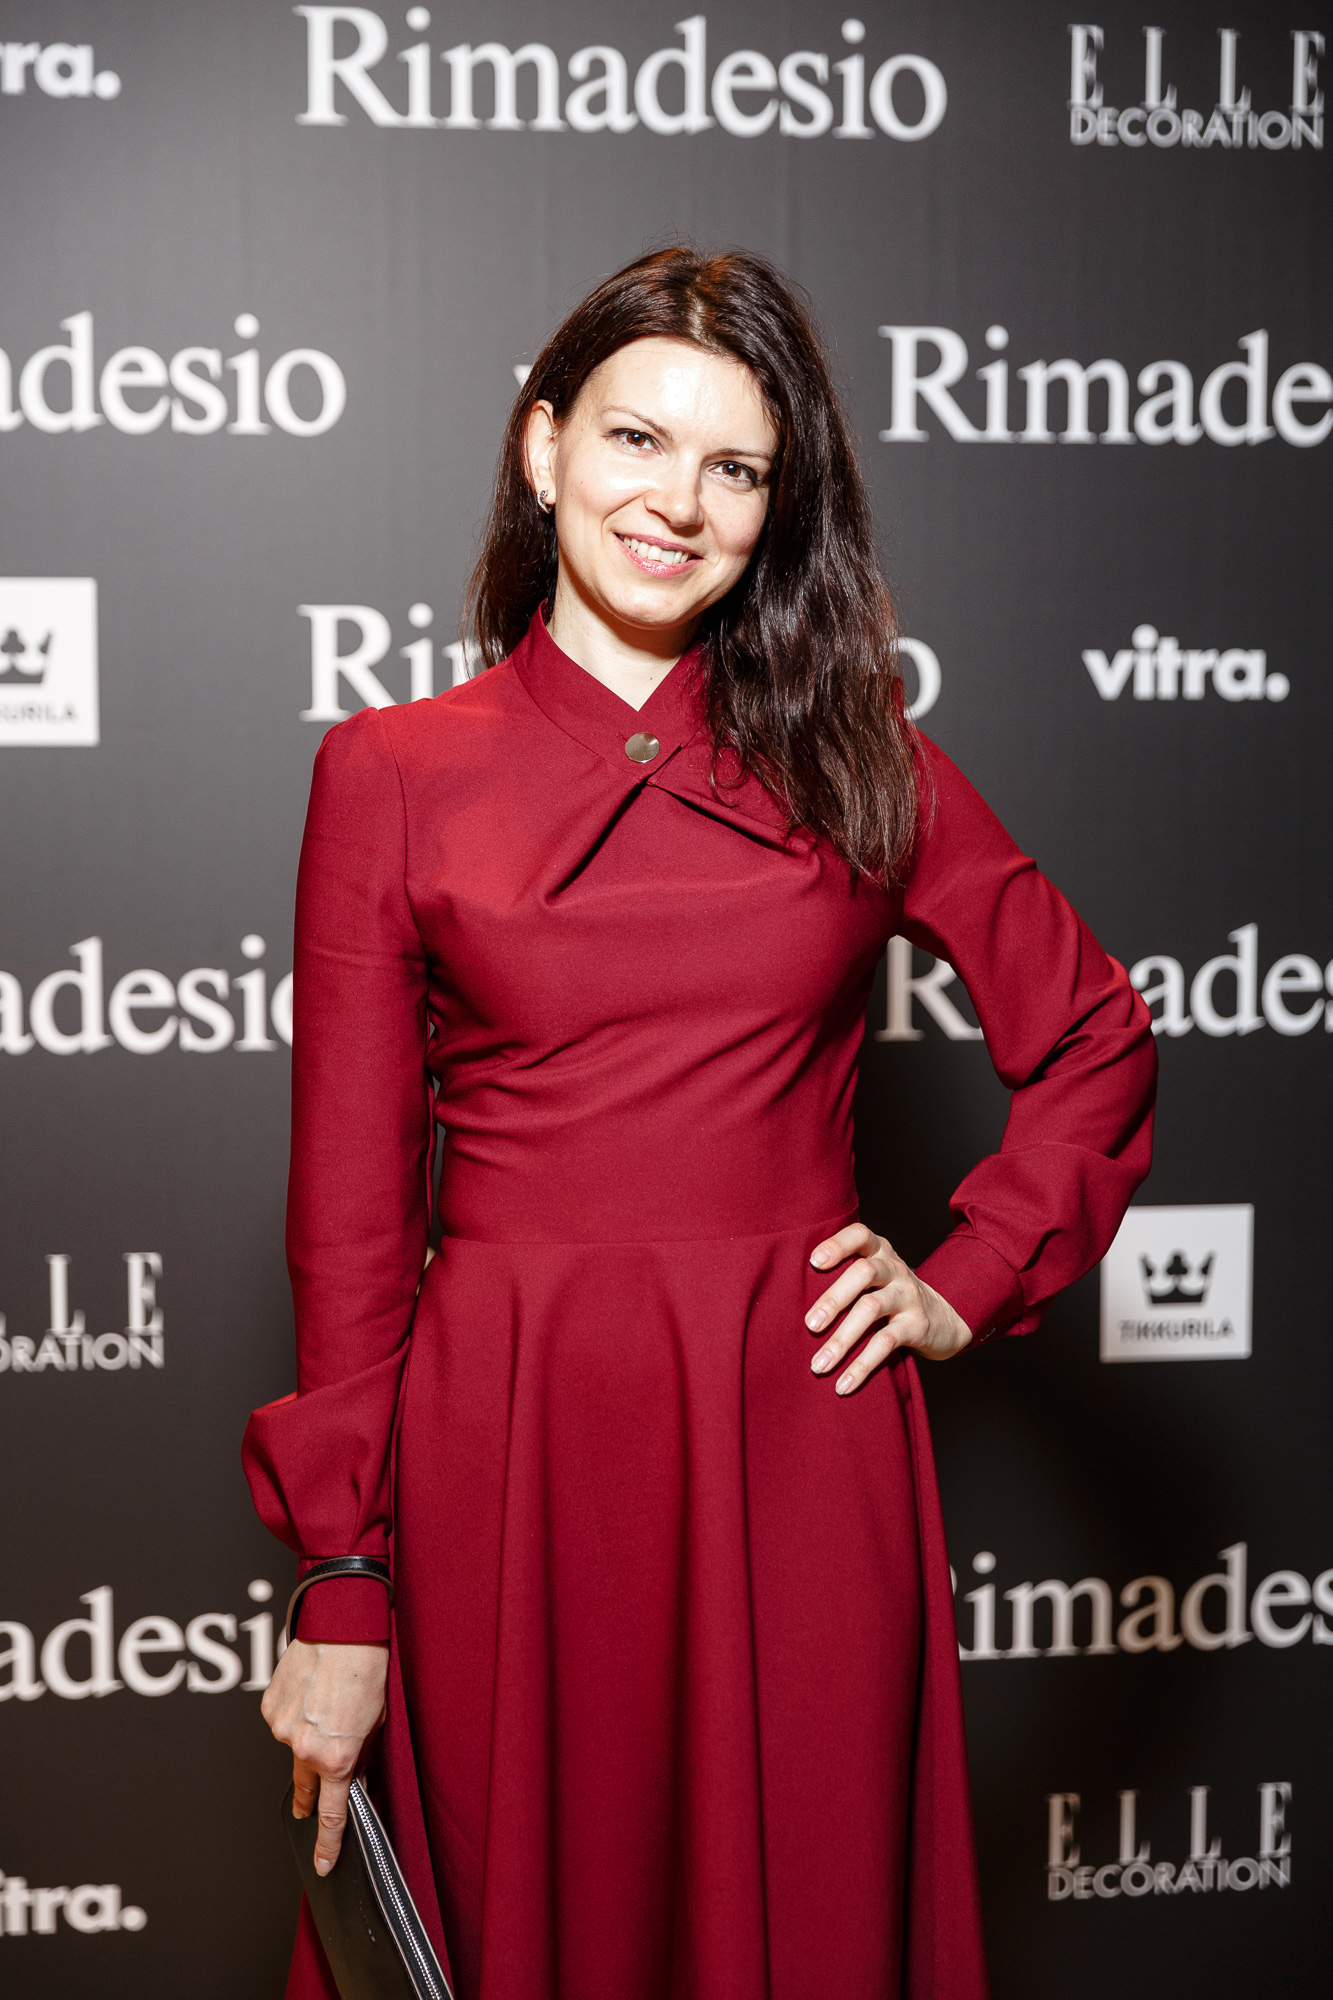 rimadesio-moscow-147